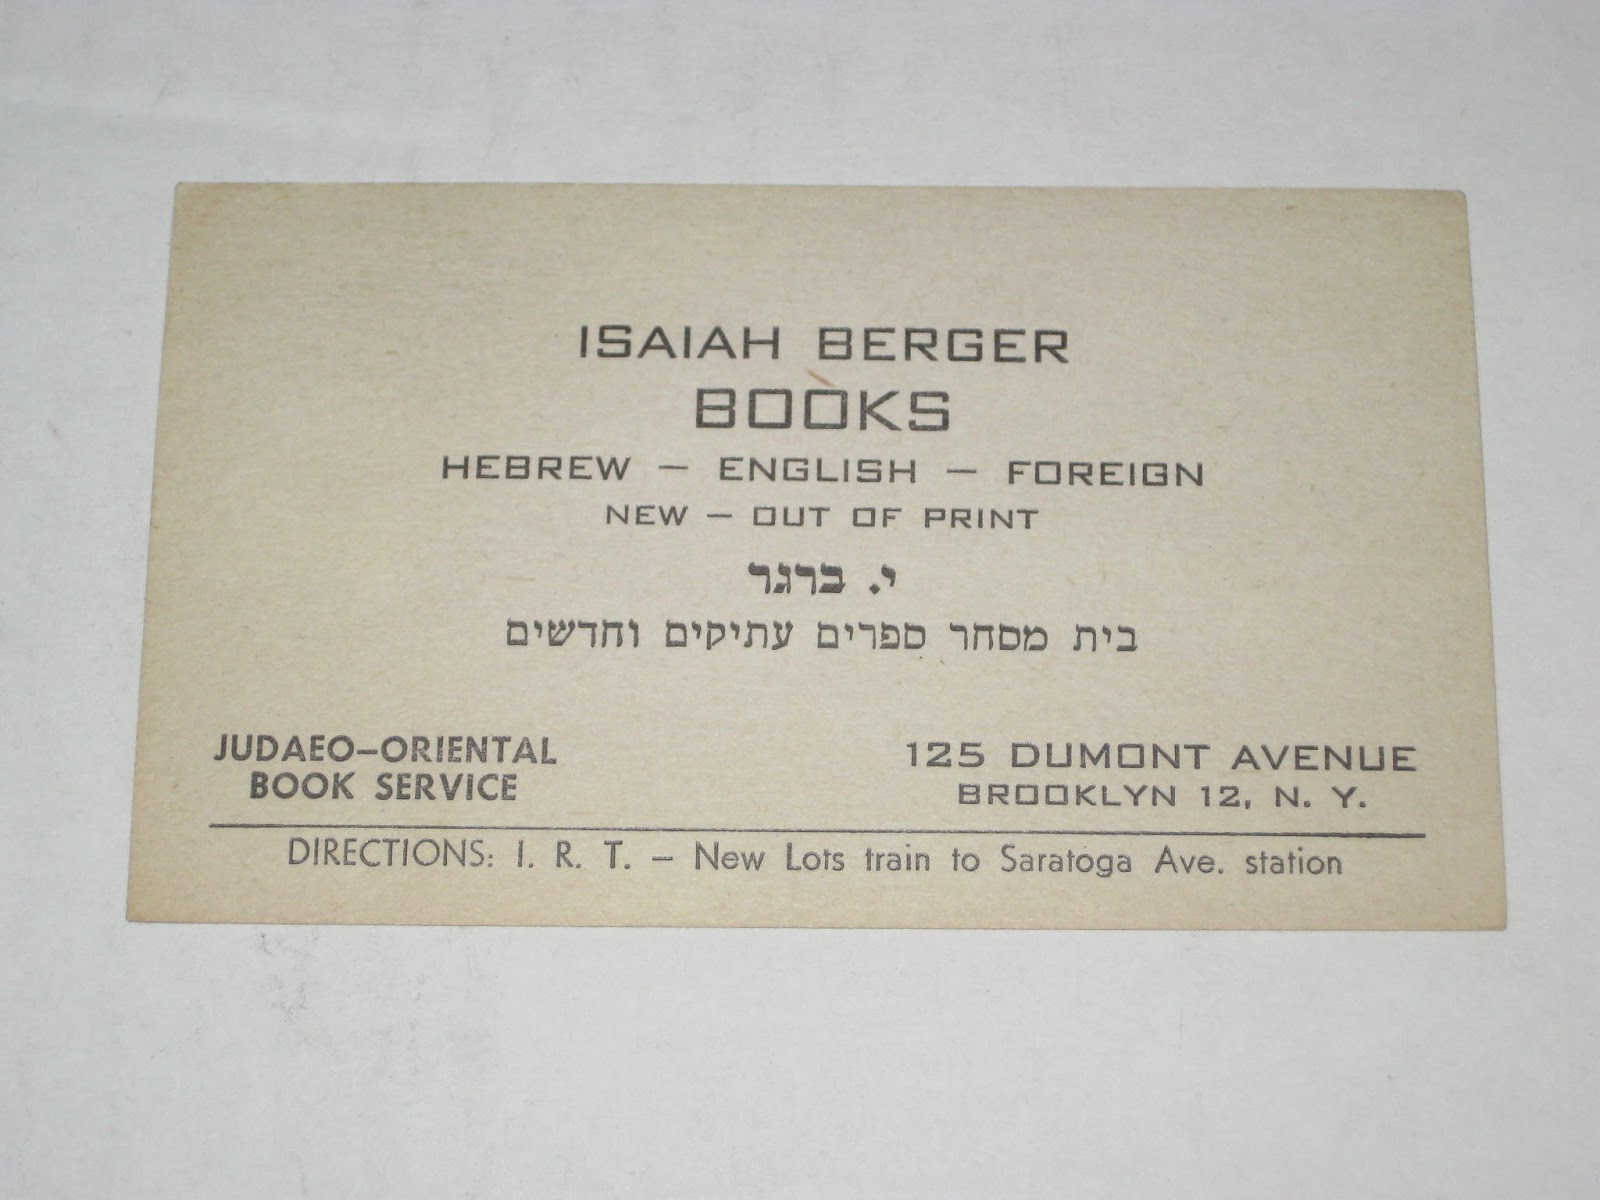 Musings of a Jewish Bookseller: For Posterity the Business Card of ...